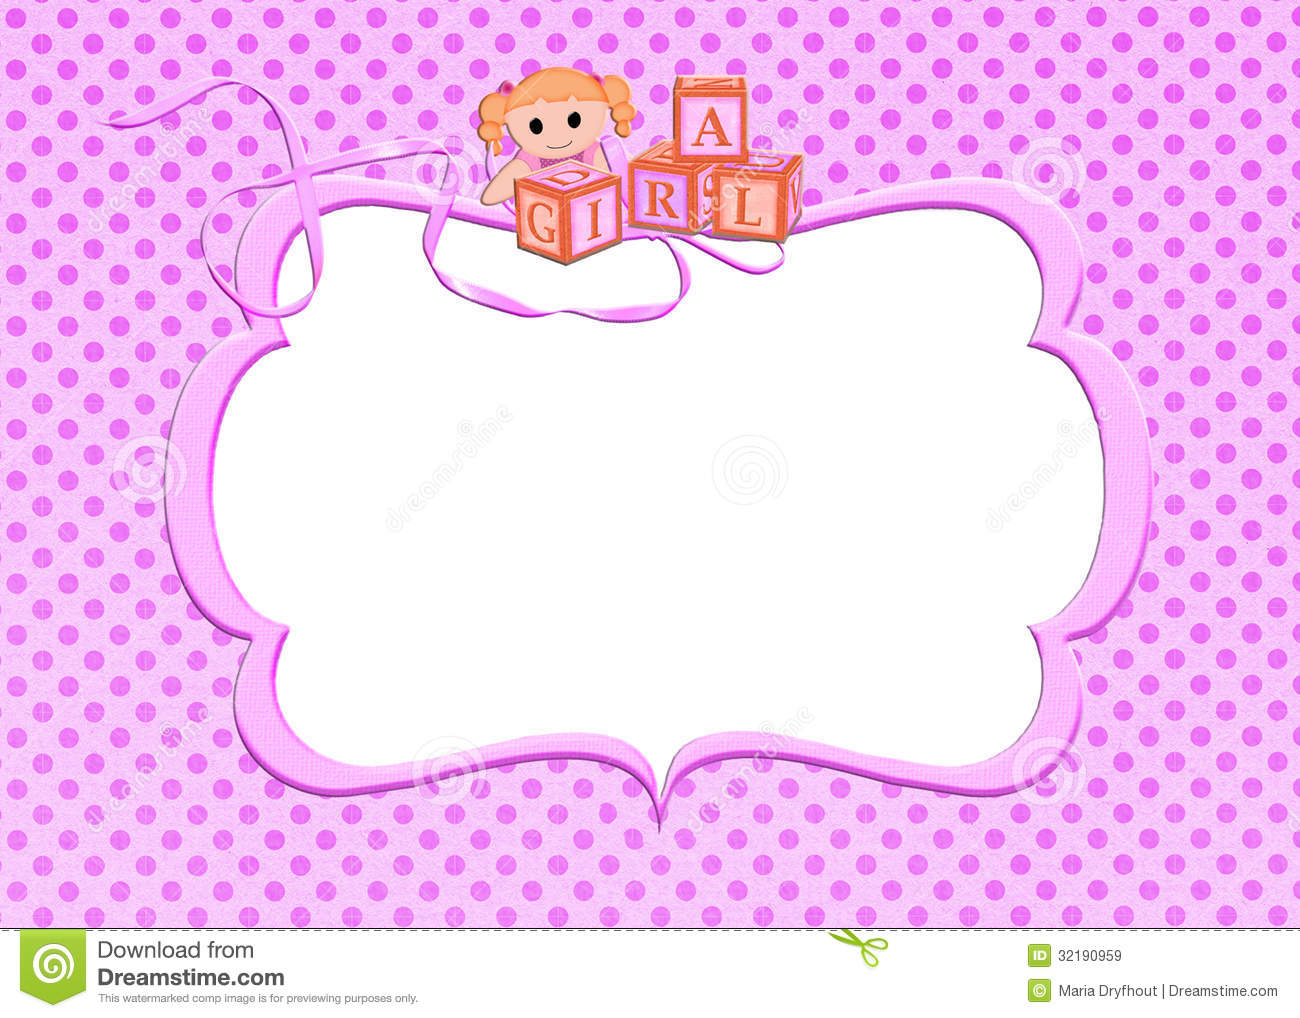 Baby Girl Toys Clipart Pink Baby Girl Frame Royalty Free Stock Images